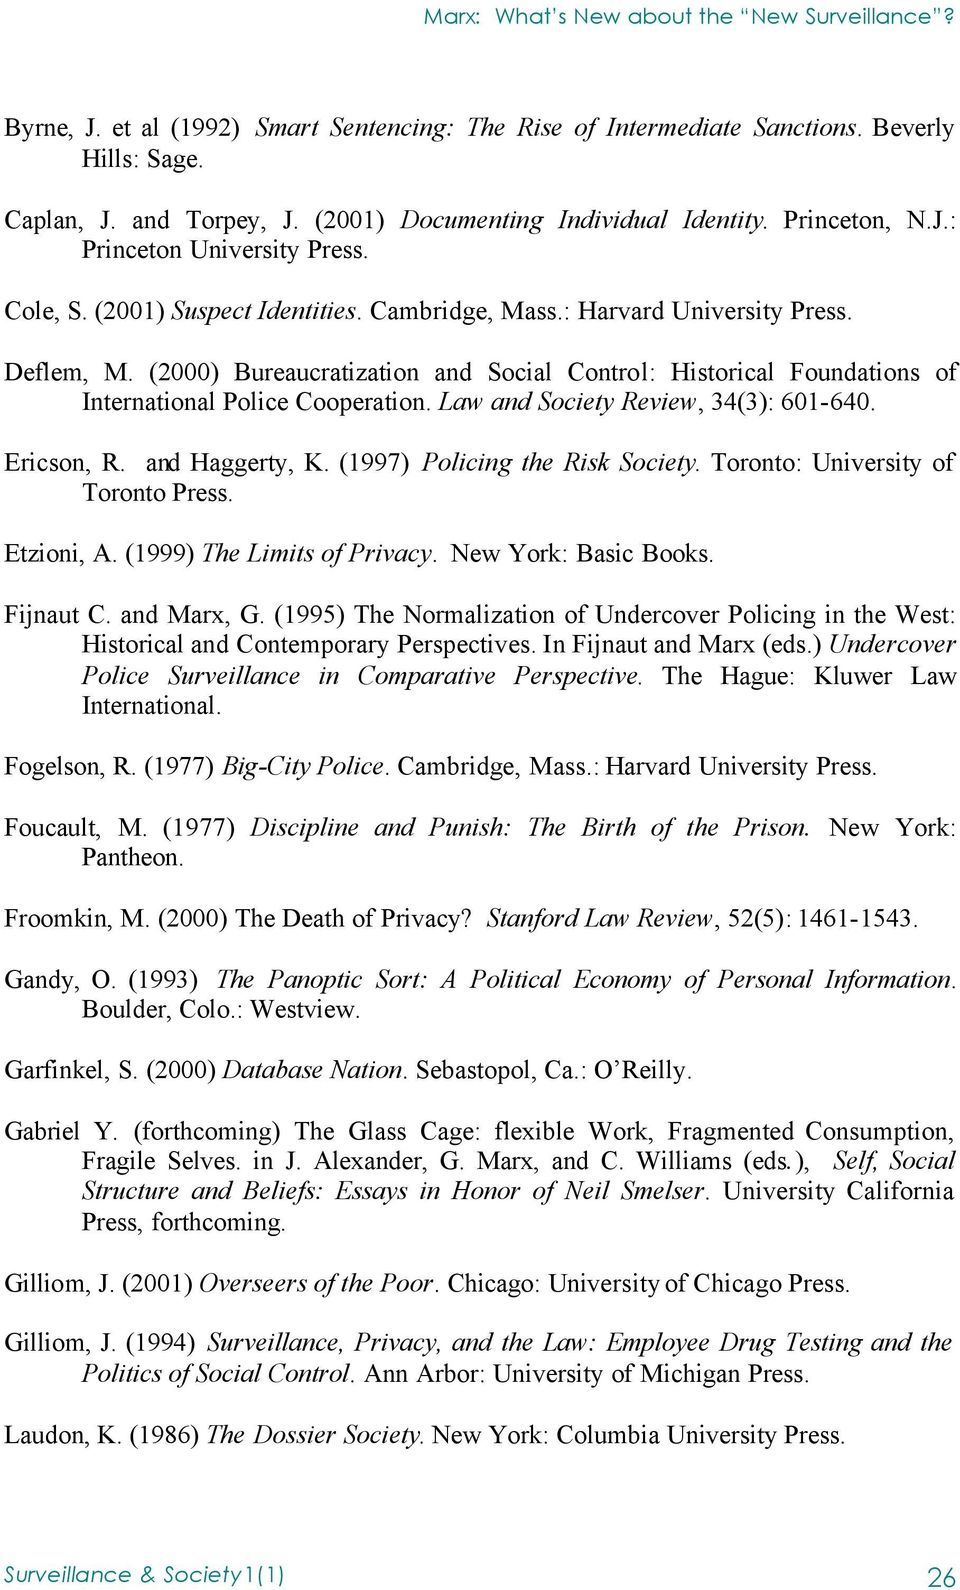 Law and Society Review, 34(3): 601-640. Ericson, R. and Haggerty, K. (1997) Policing the Risk Society. Toronto: University of Toronto Press. Etzioni, A. (1999) The Limits of Privacy.